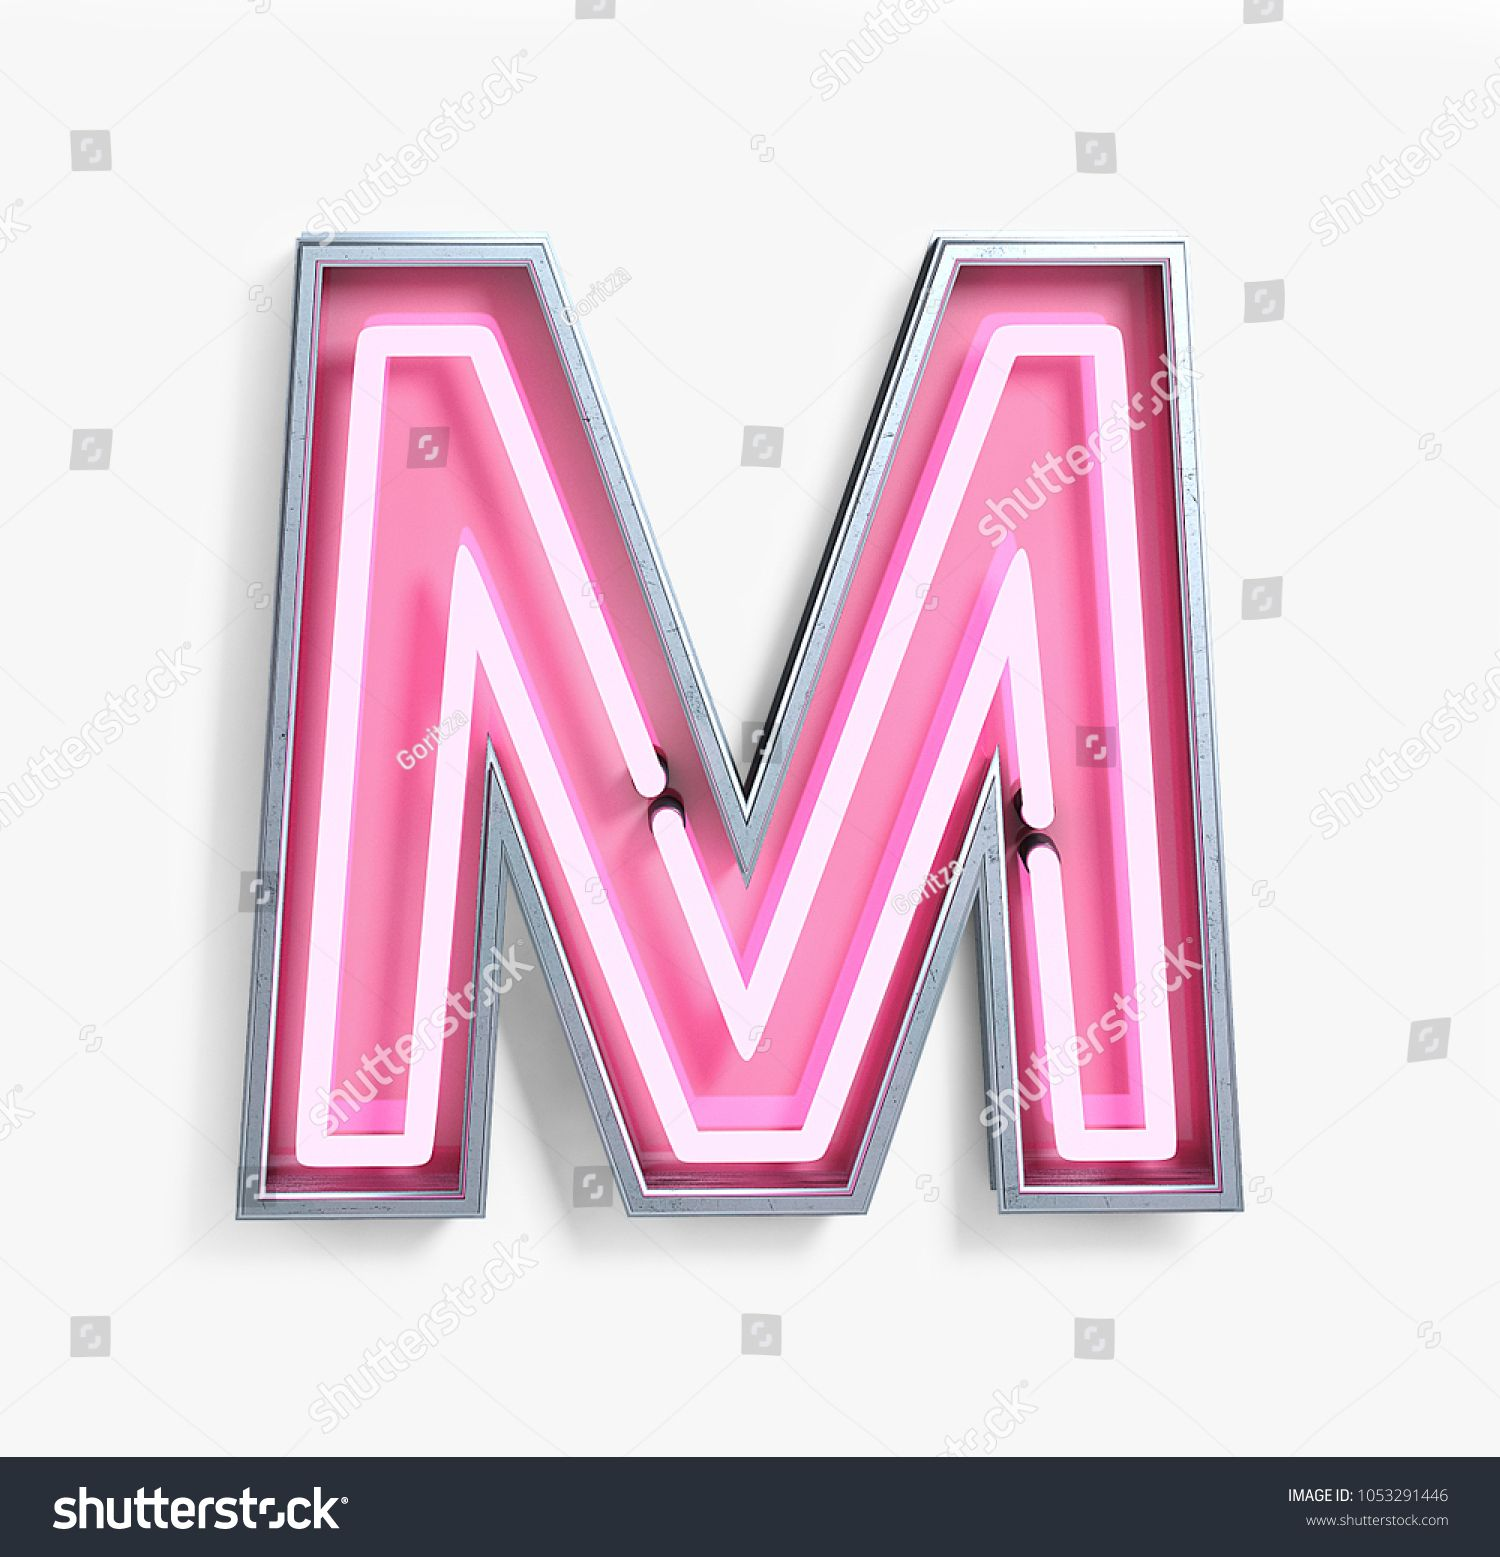 Bright Neon Font with fluorescent pink tubes. Letter M